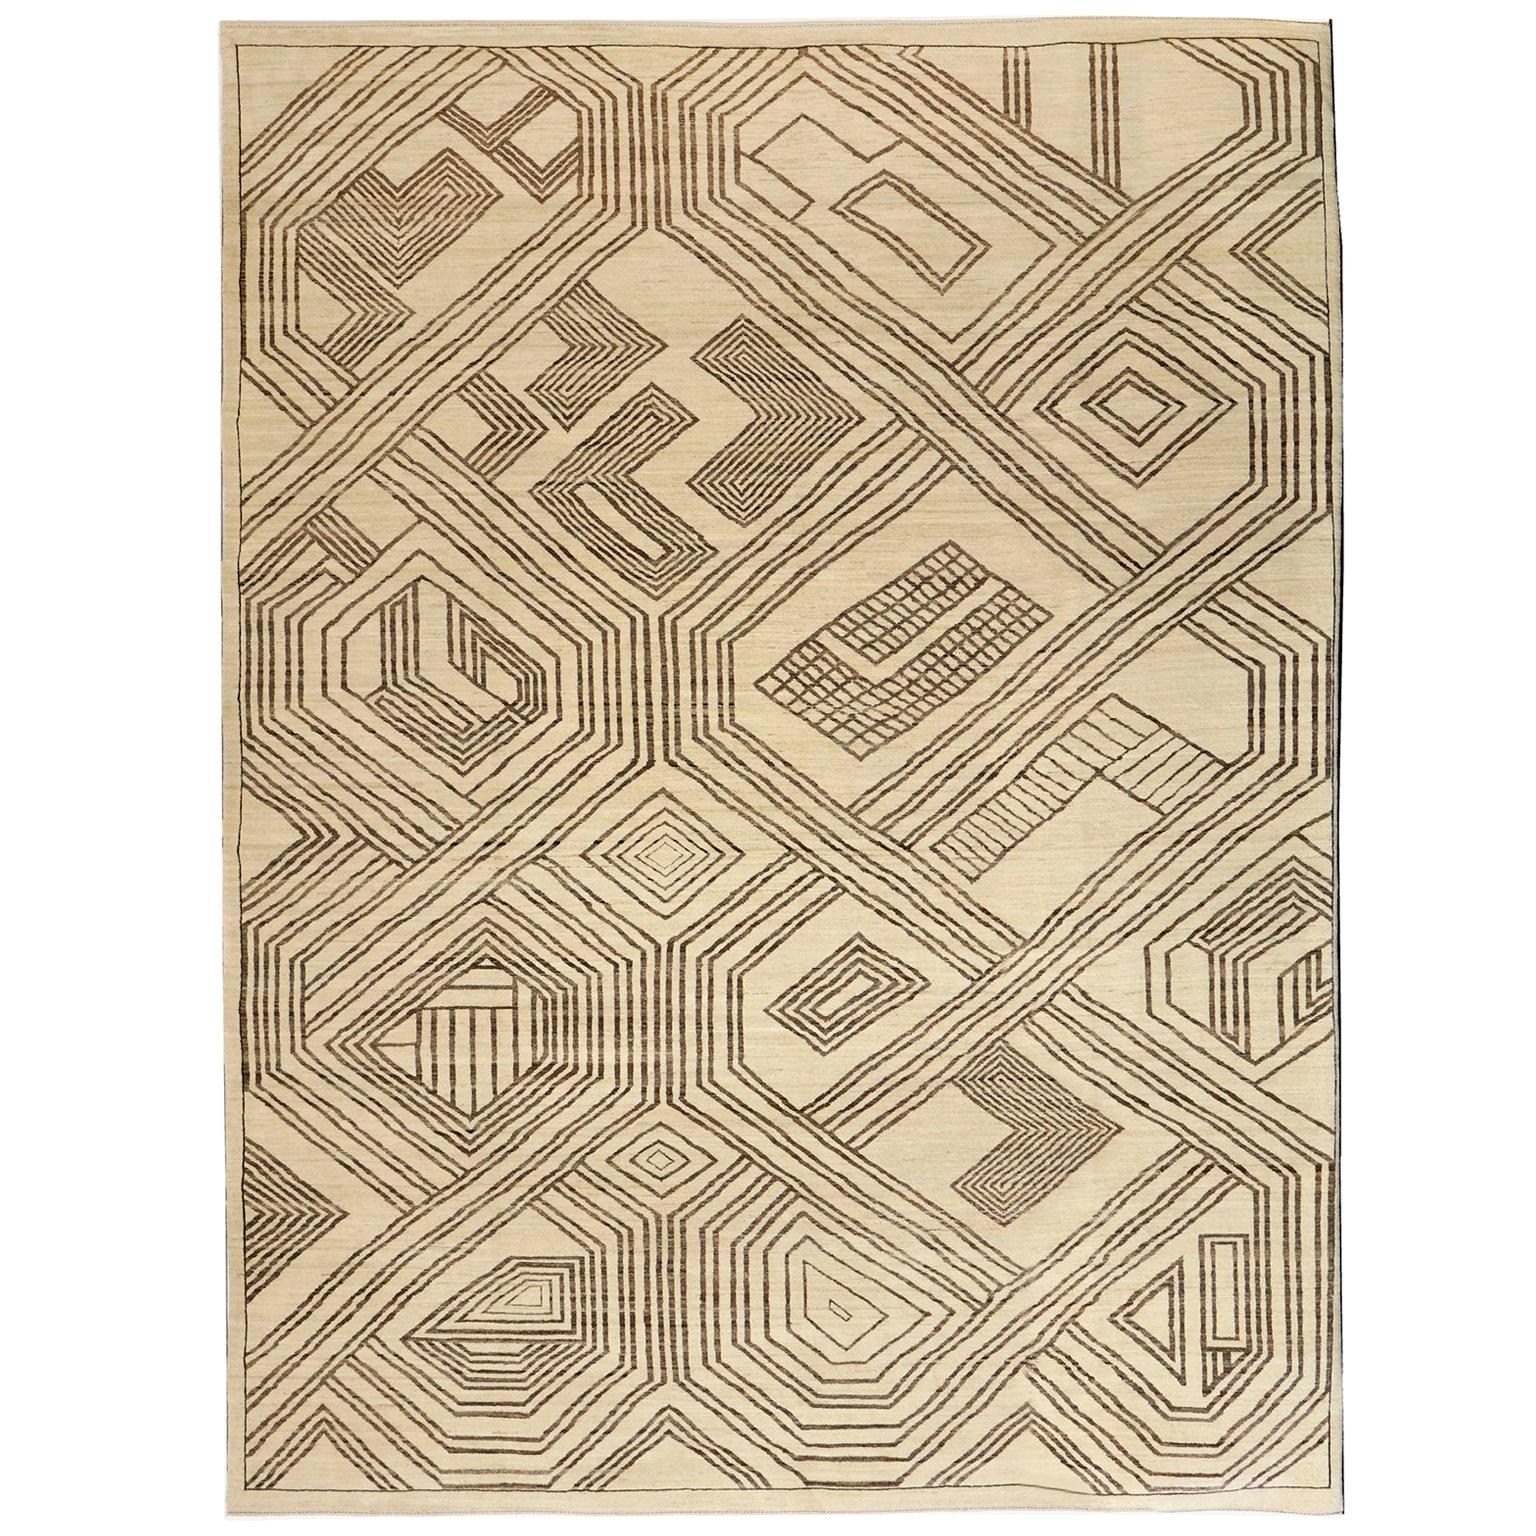 Contemporary Kuba Wool Area Rug in Neutral Tones in Cream and Brown